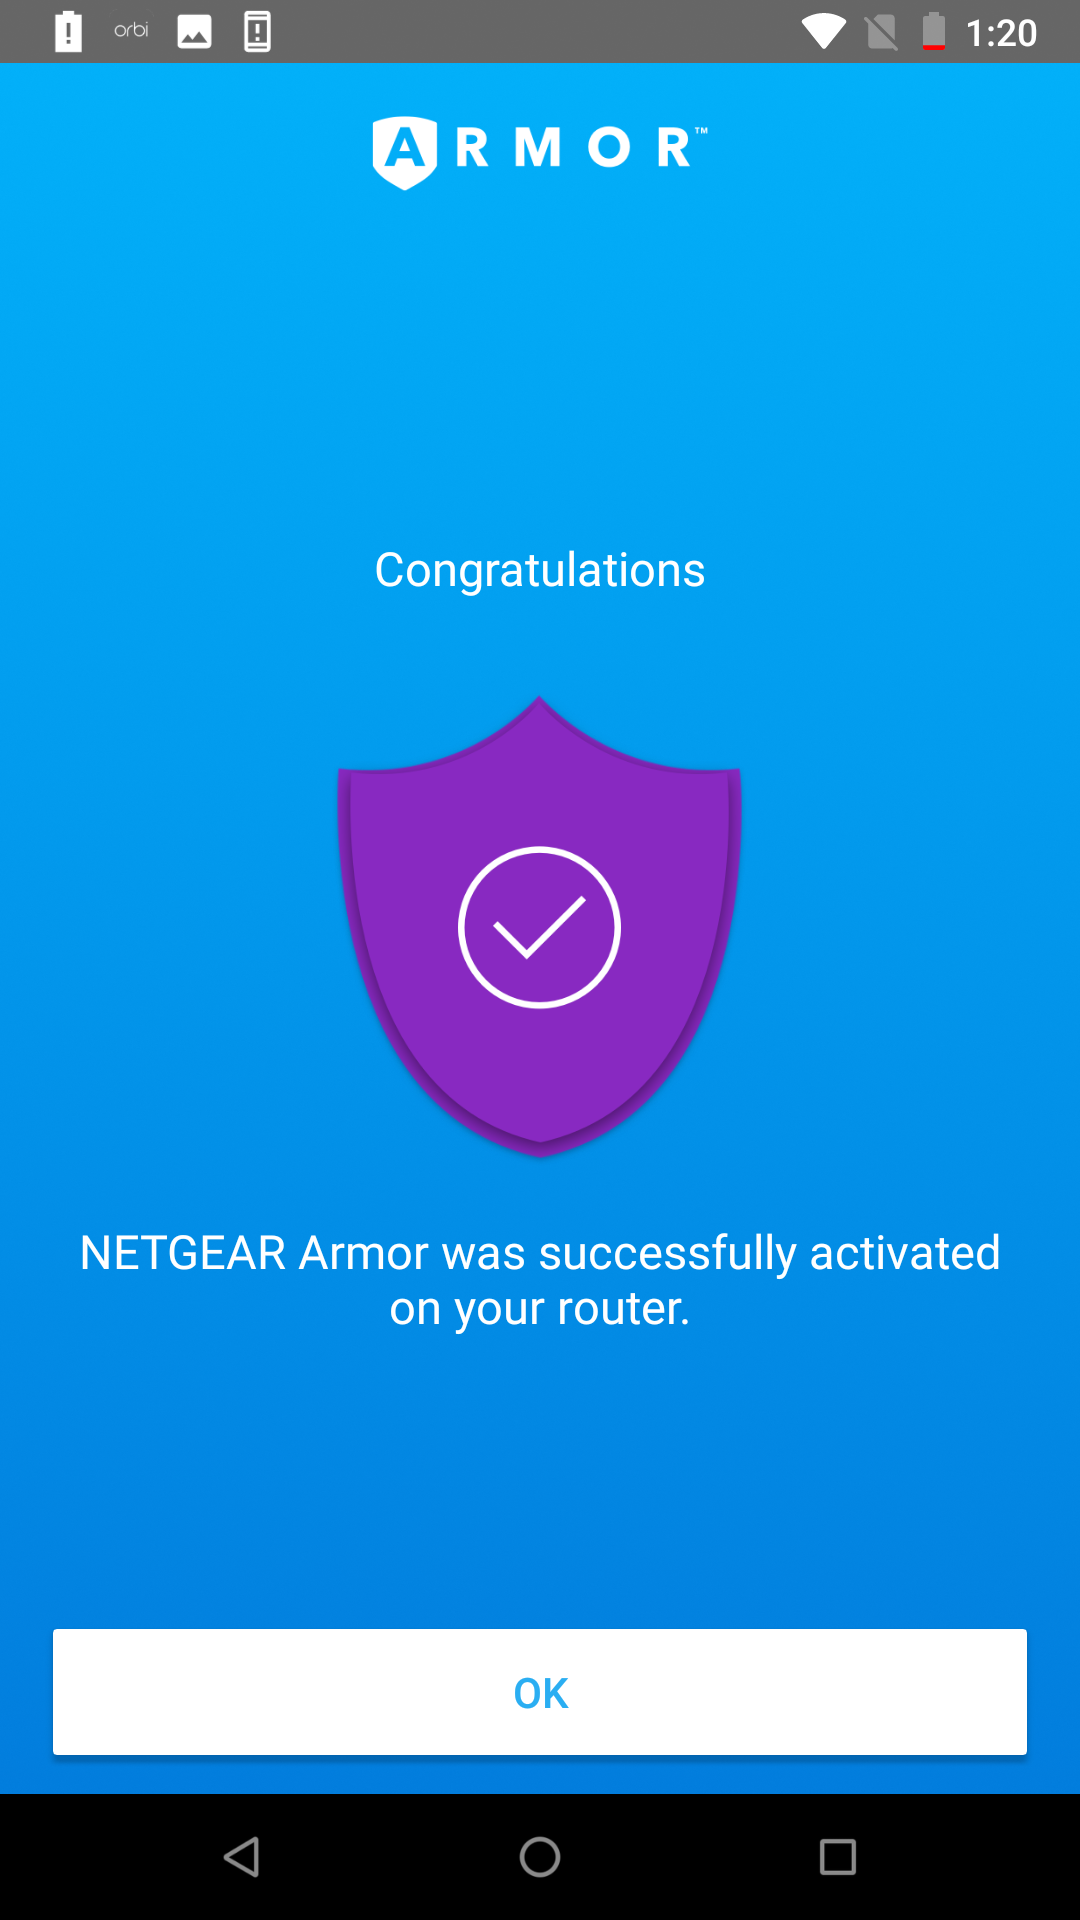 How to activate NETGEAR Armor protection on your Orbi router